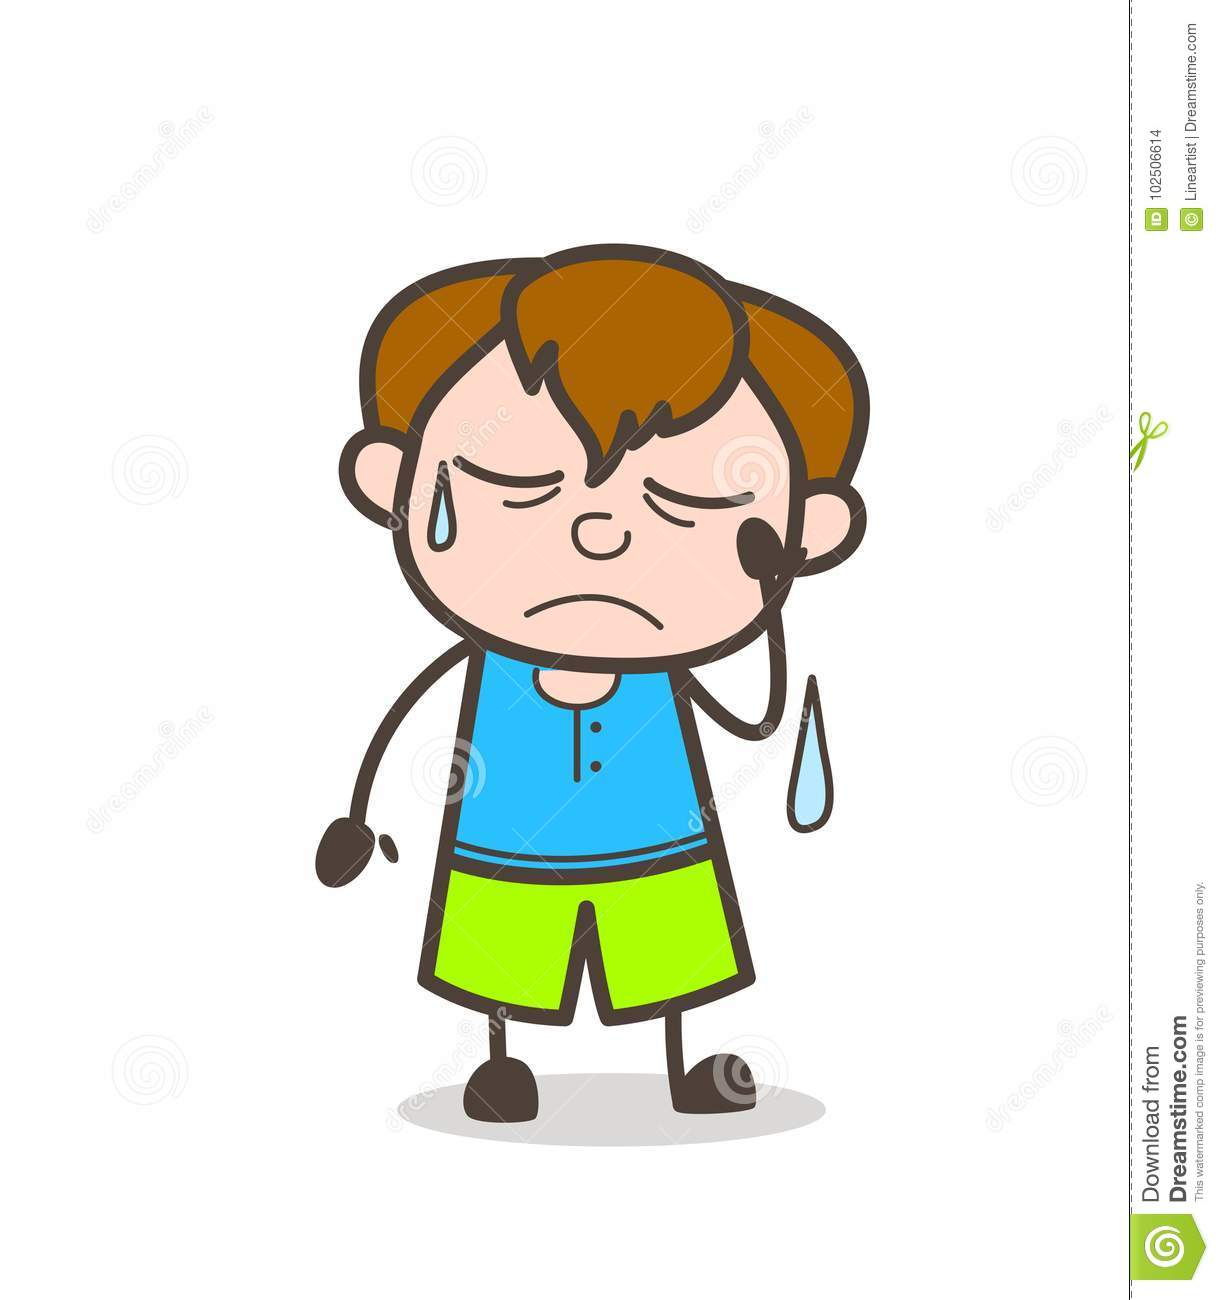 Very sad face with tears cute cartoon boy illustration